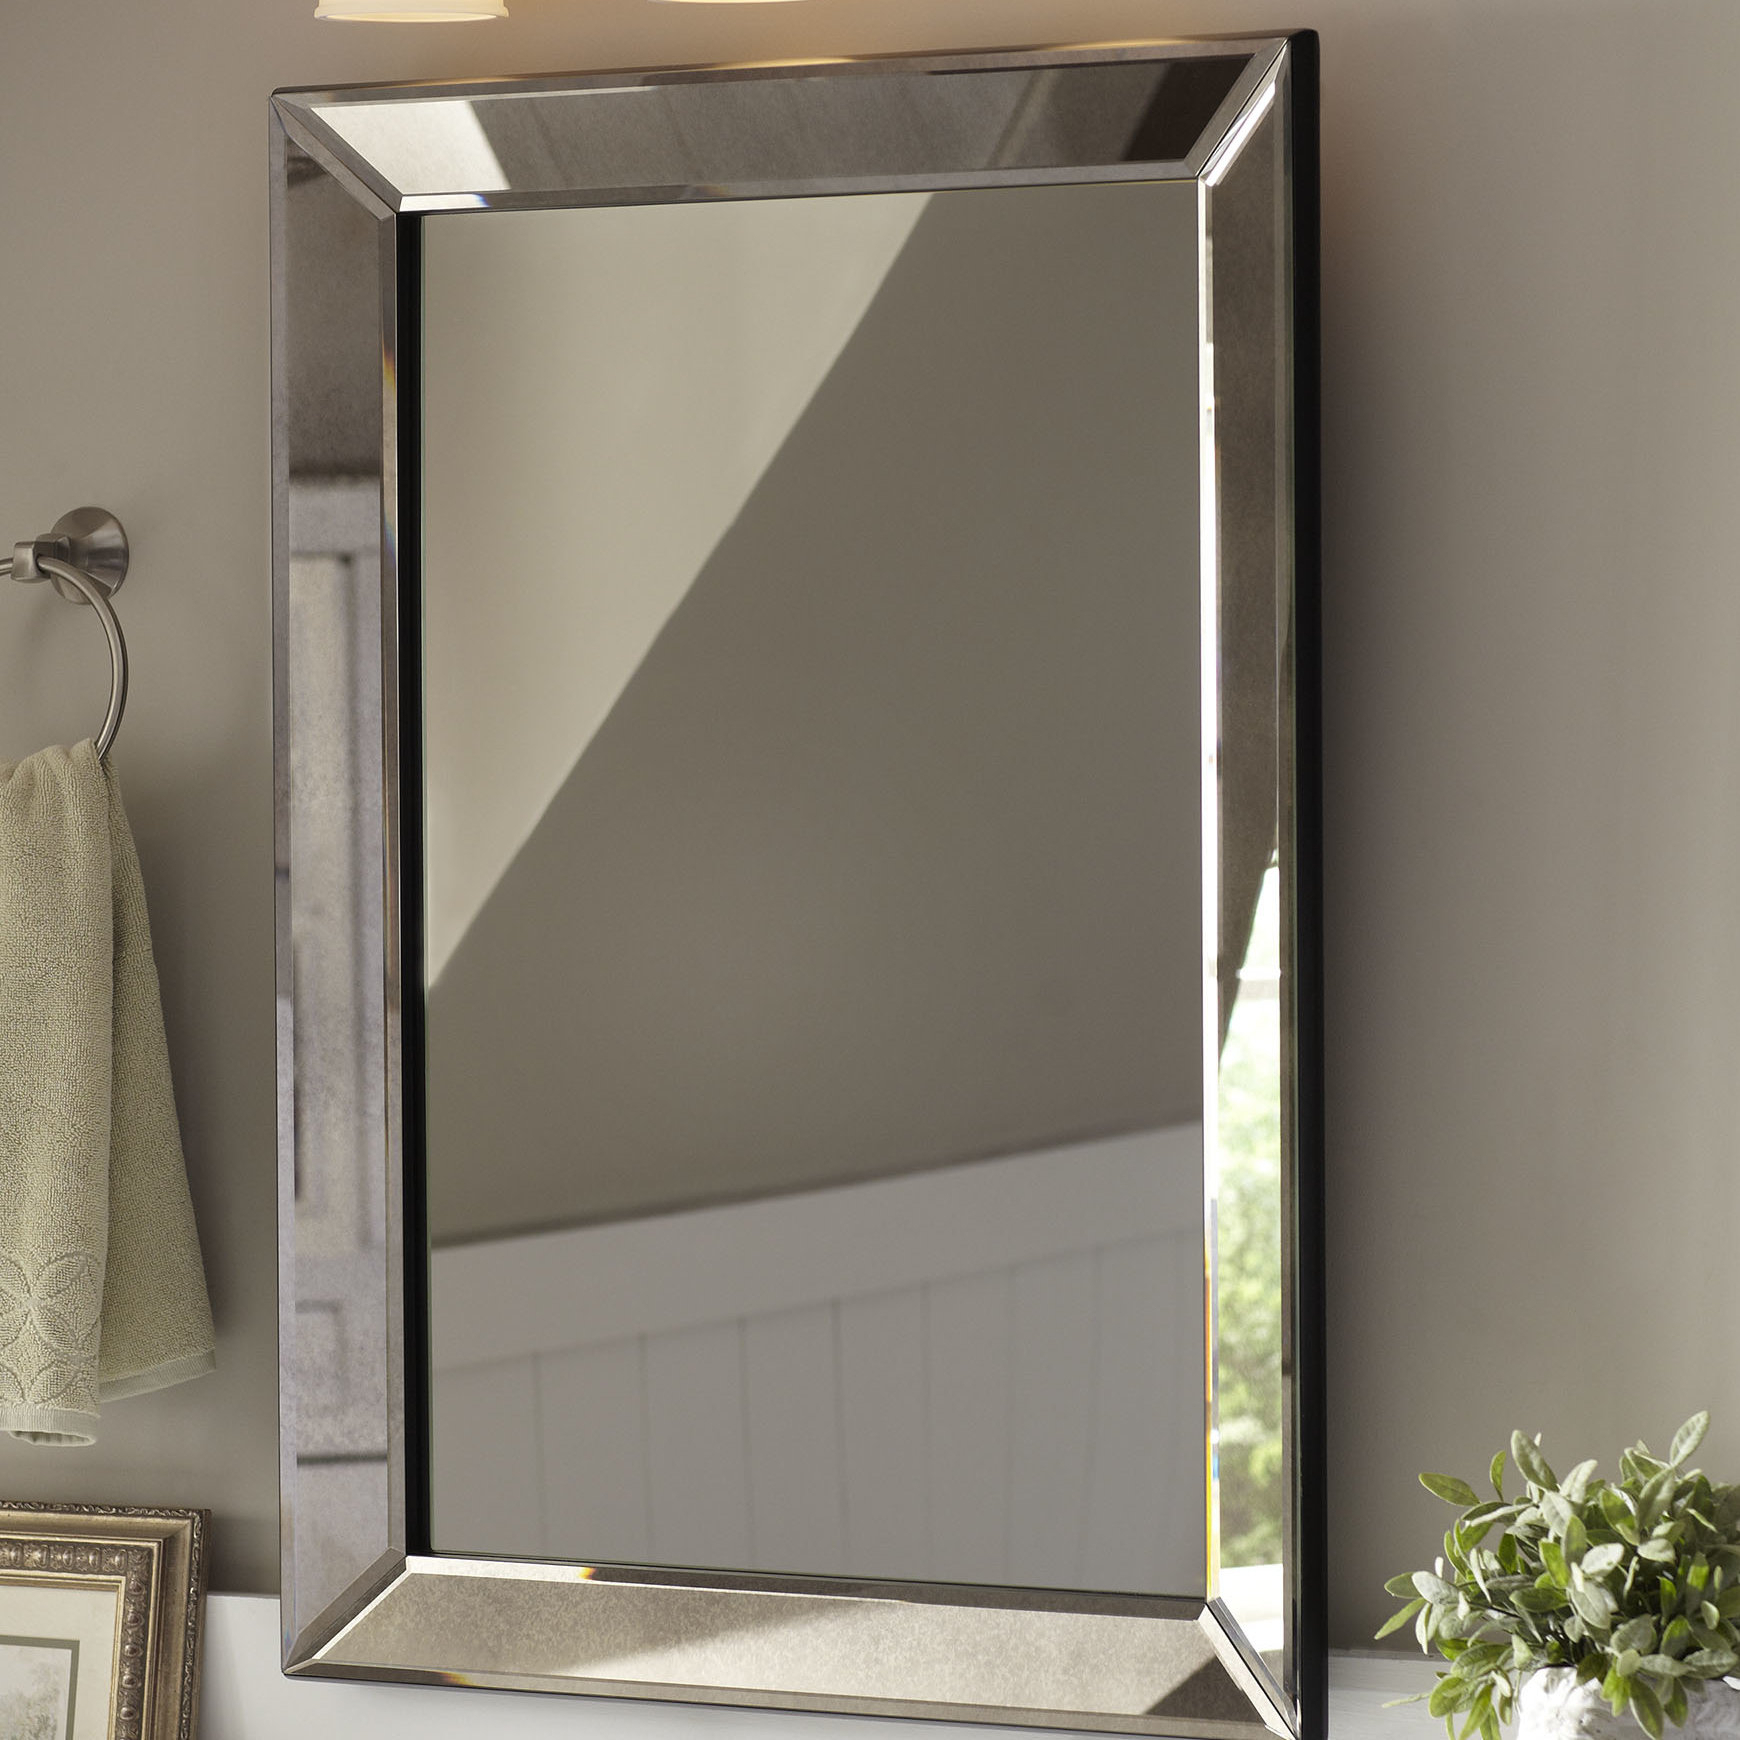 Farmhouse Mirrors | Birch Lane Intended For Landover Rustic Distressed Bathroom/vanity Mirrors (View 11 of 30)